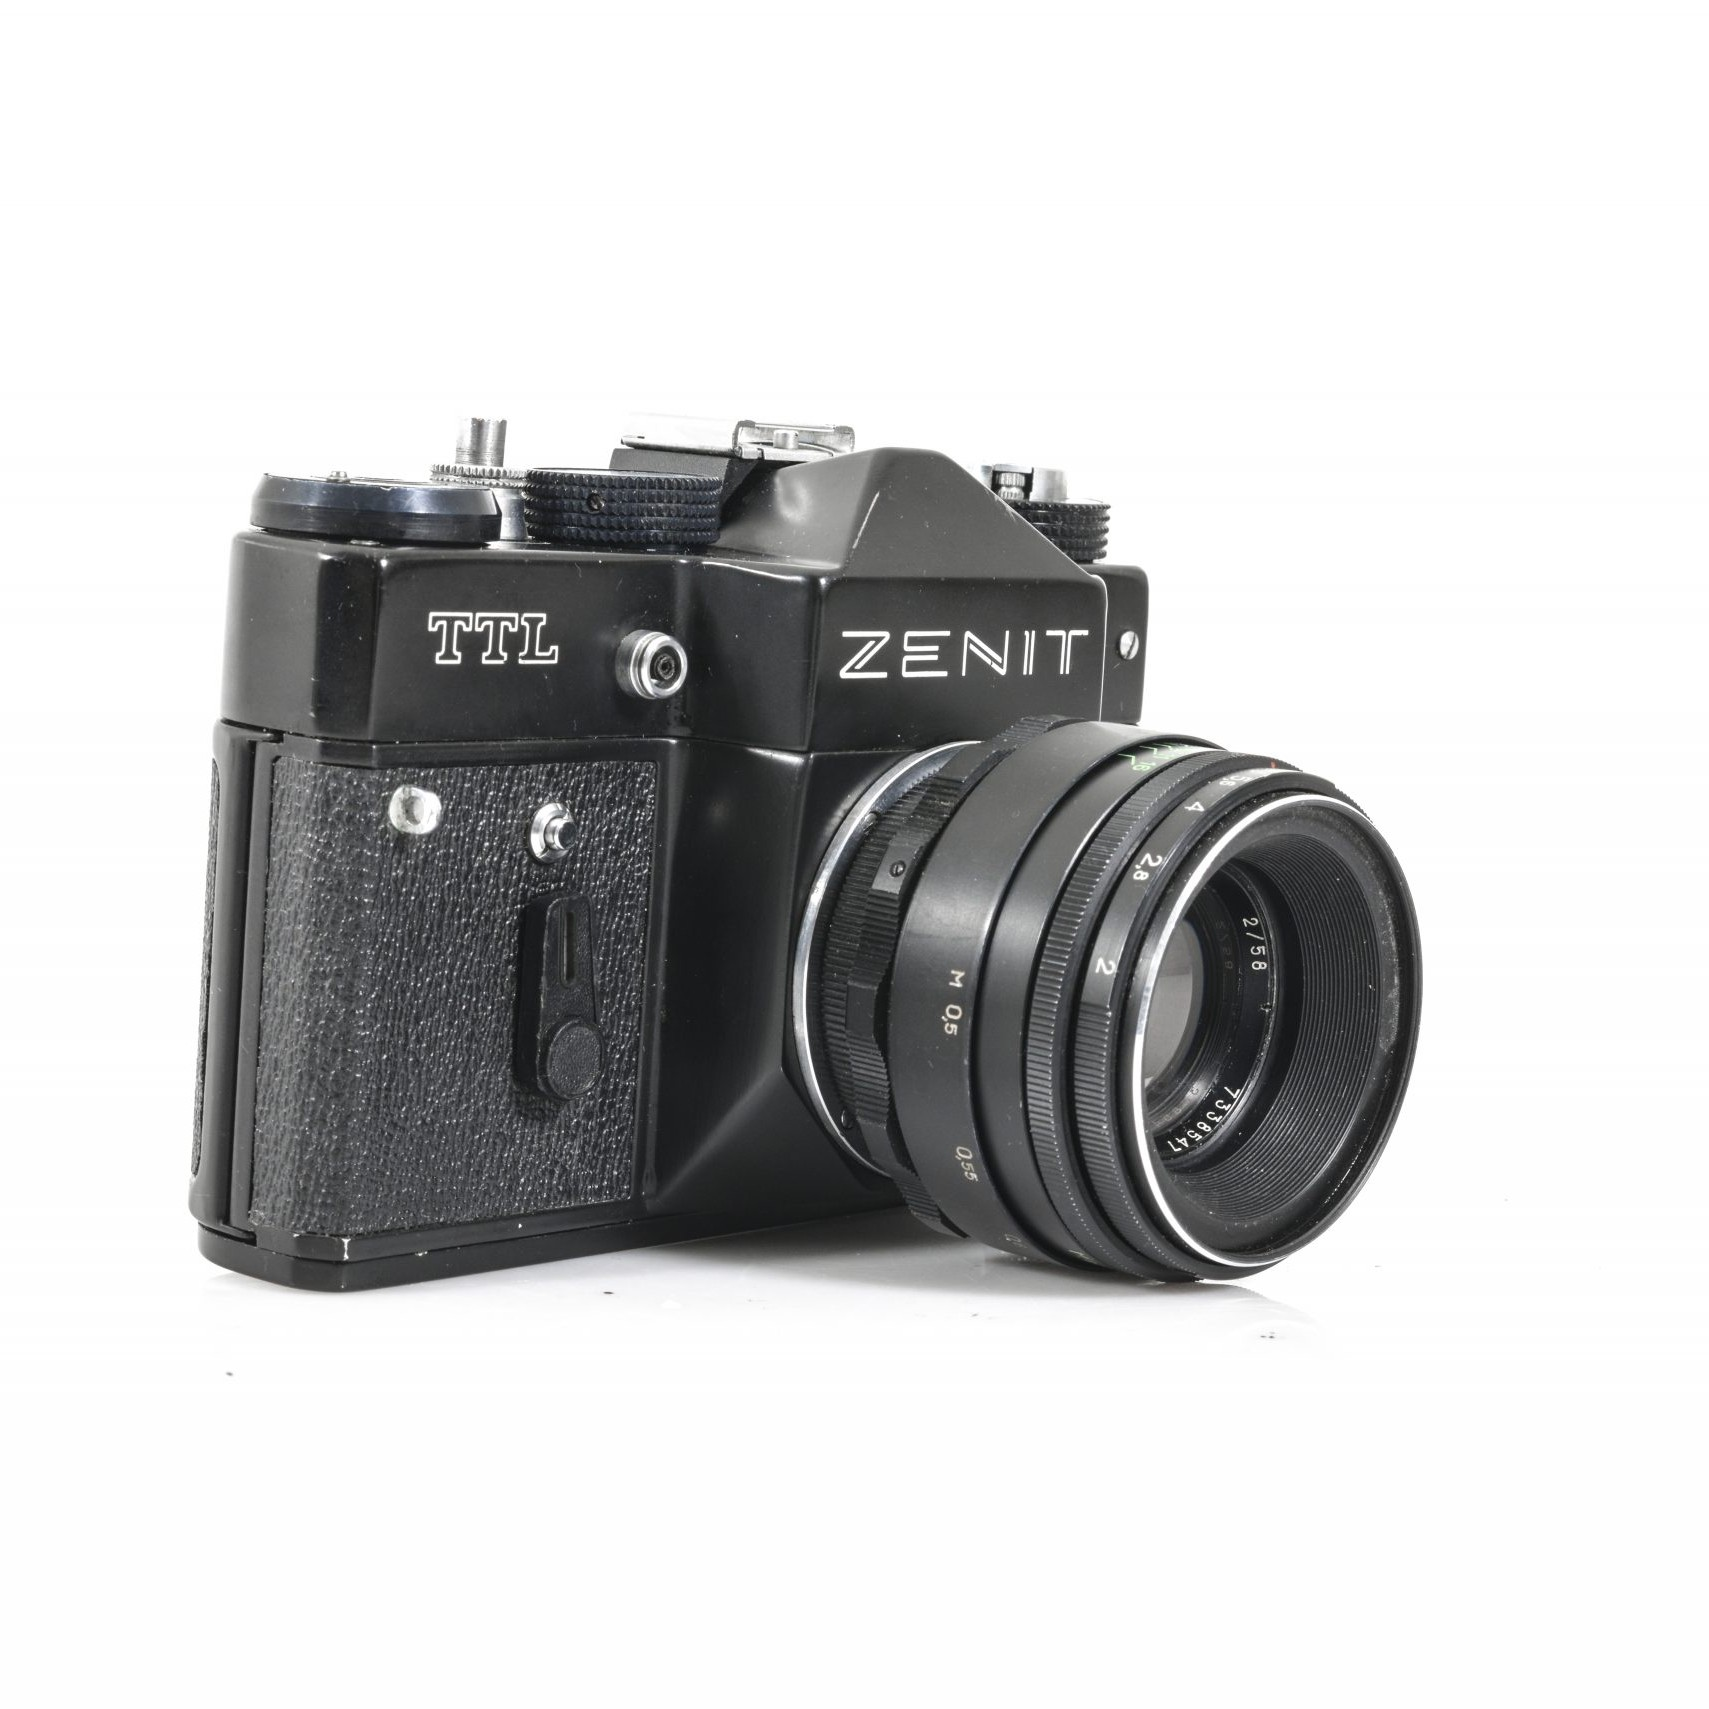 Zenit TTL 35mm Film Camera with Helios 2/58 44-2 Lens (Tested and Working)